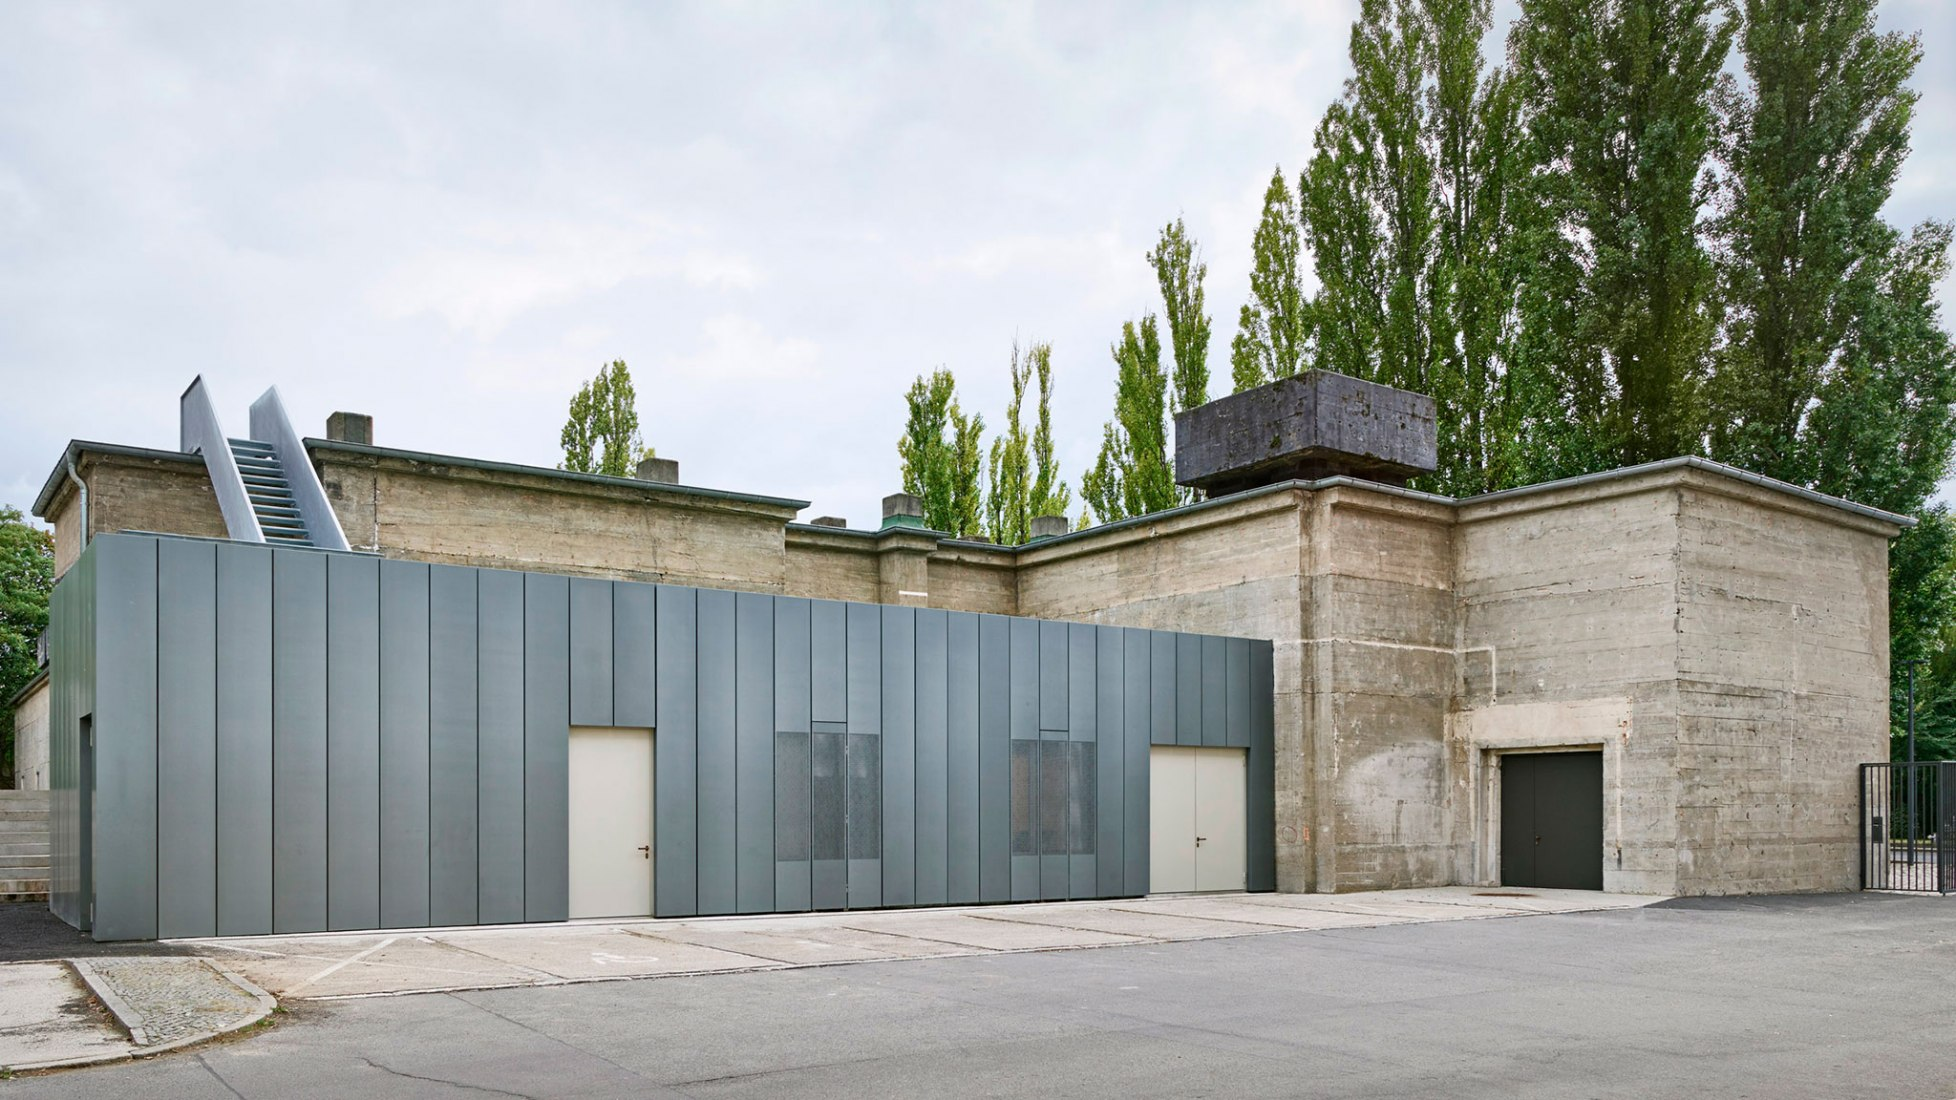 Exterior view. The Feuerle Collection by John Pawson. Photograph © Holger Niehaus